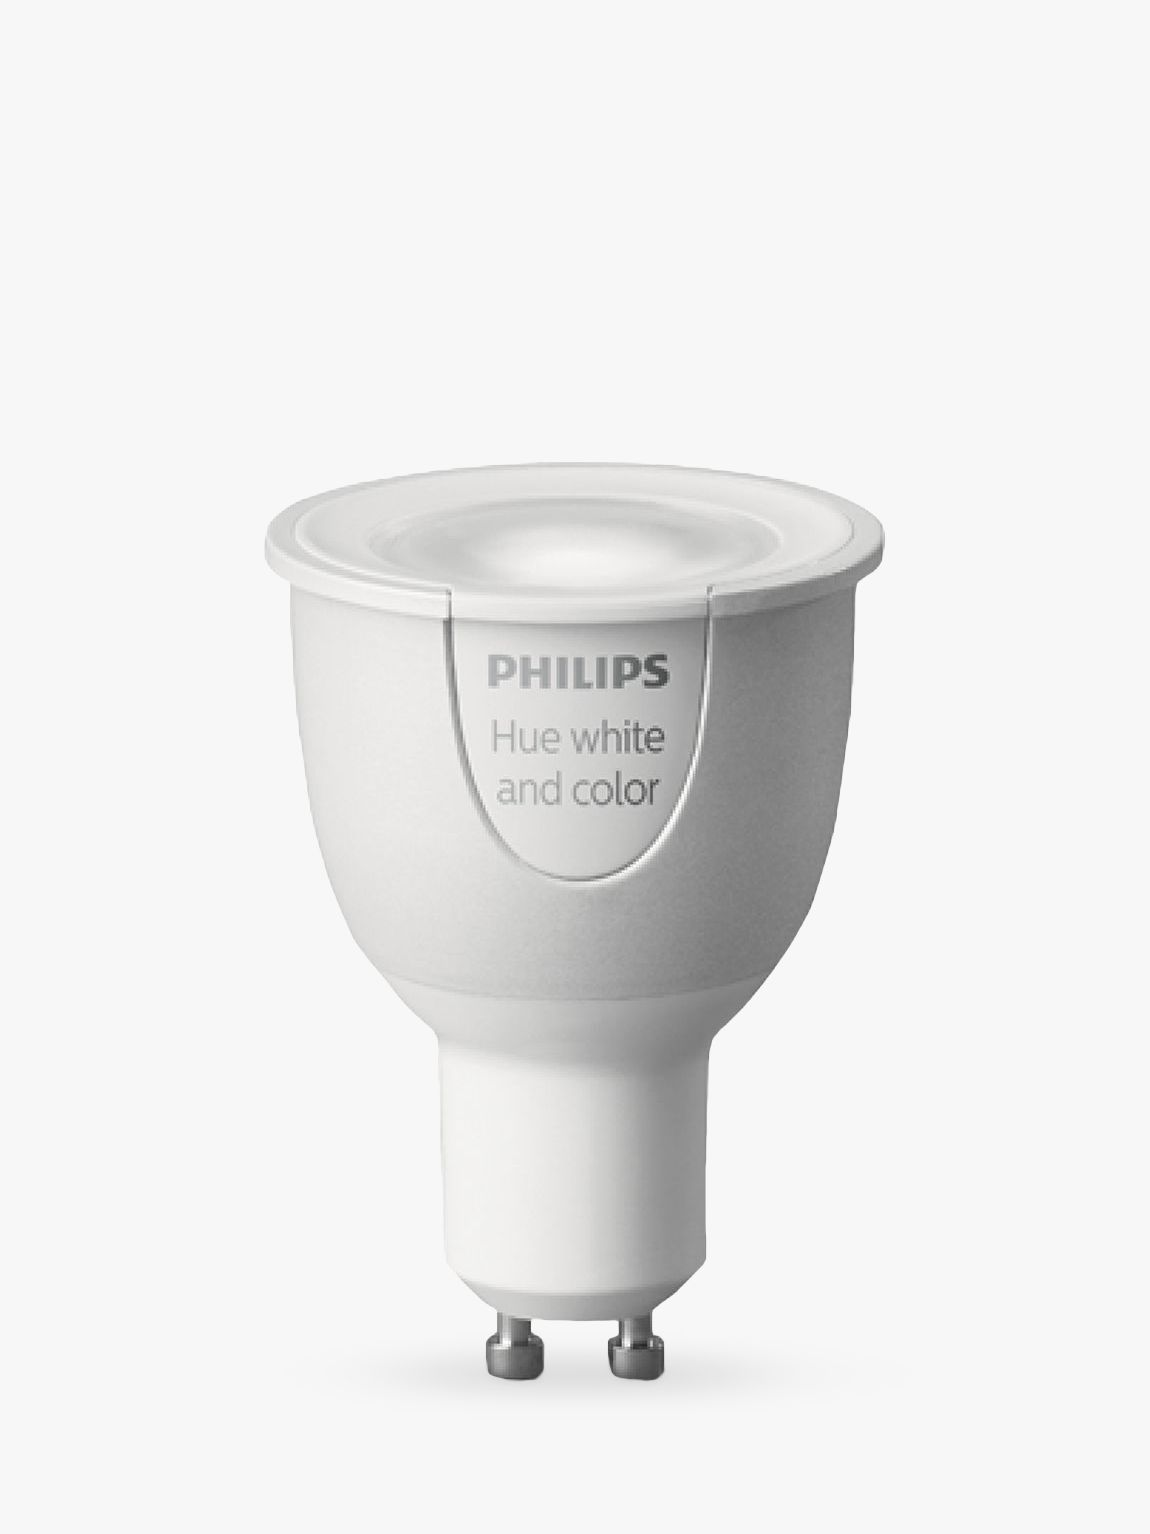 Philips Hue Included Philips Hue White And Colour Ambiance Wireless Lighting